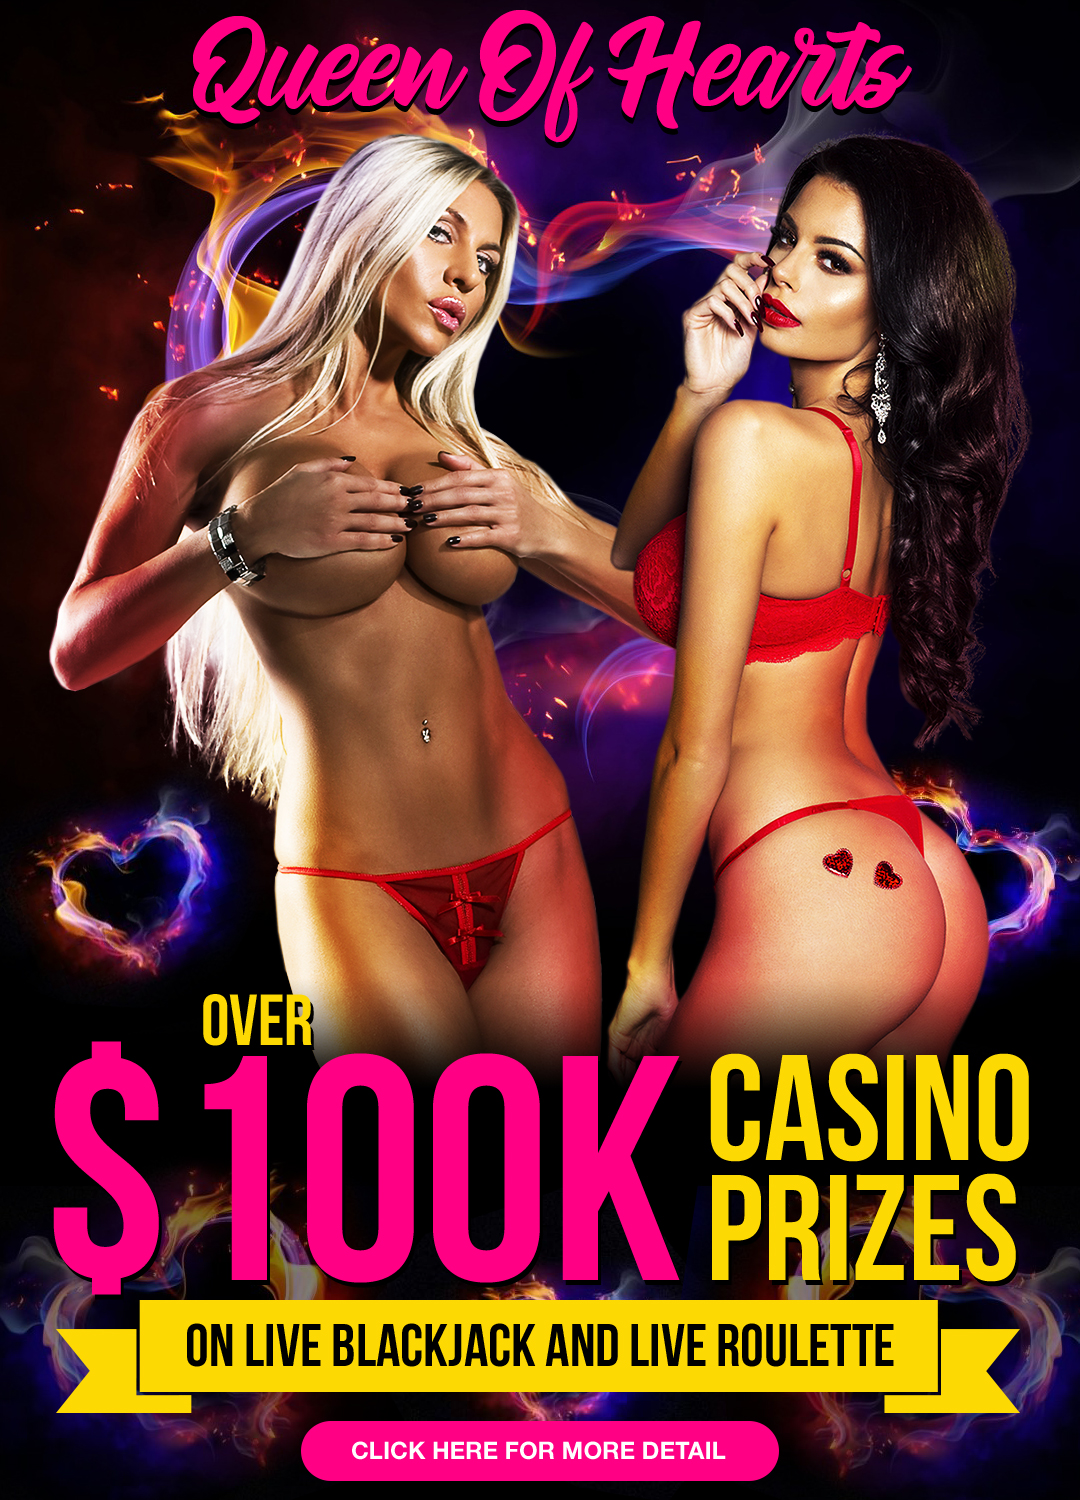 queen-of-hearts-on-all-live-casino-suppliers-in-prizes-100k-second-chance